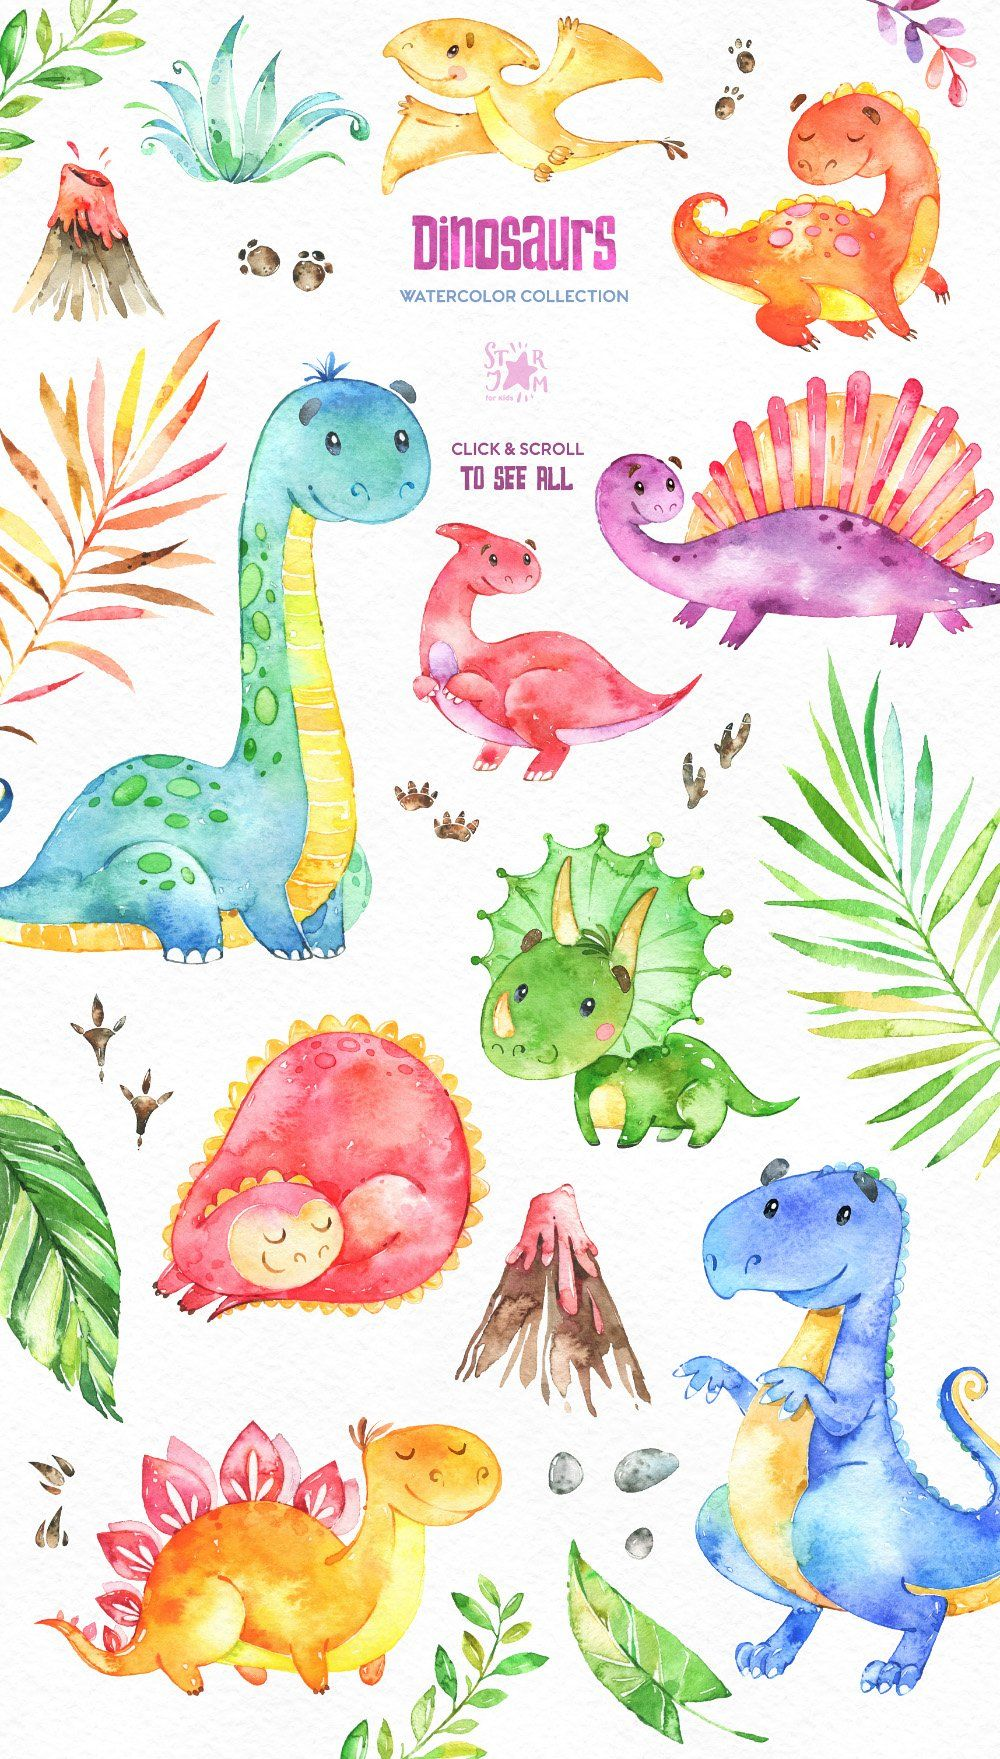 Dinosaurs. Watercolor collection. ~ Illustrations ~ Creative Market #dinosaurillustration